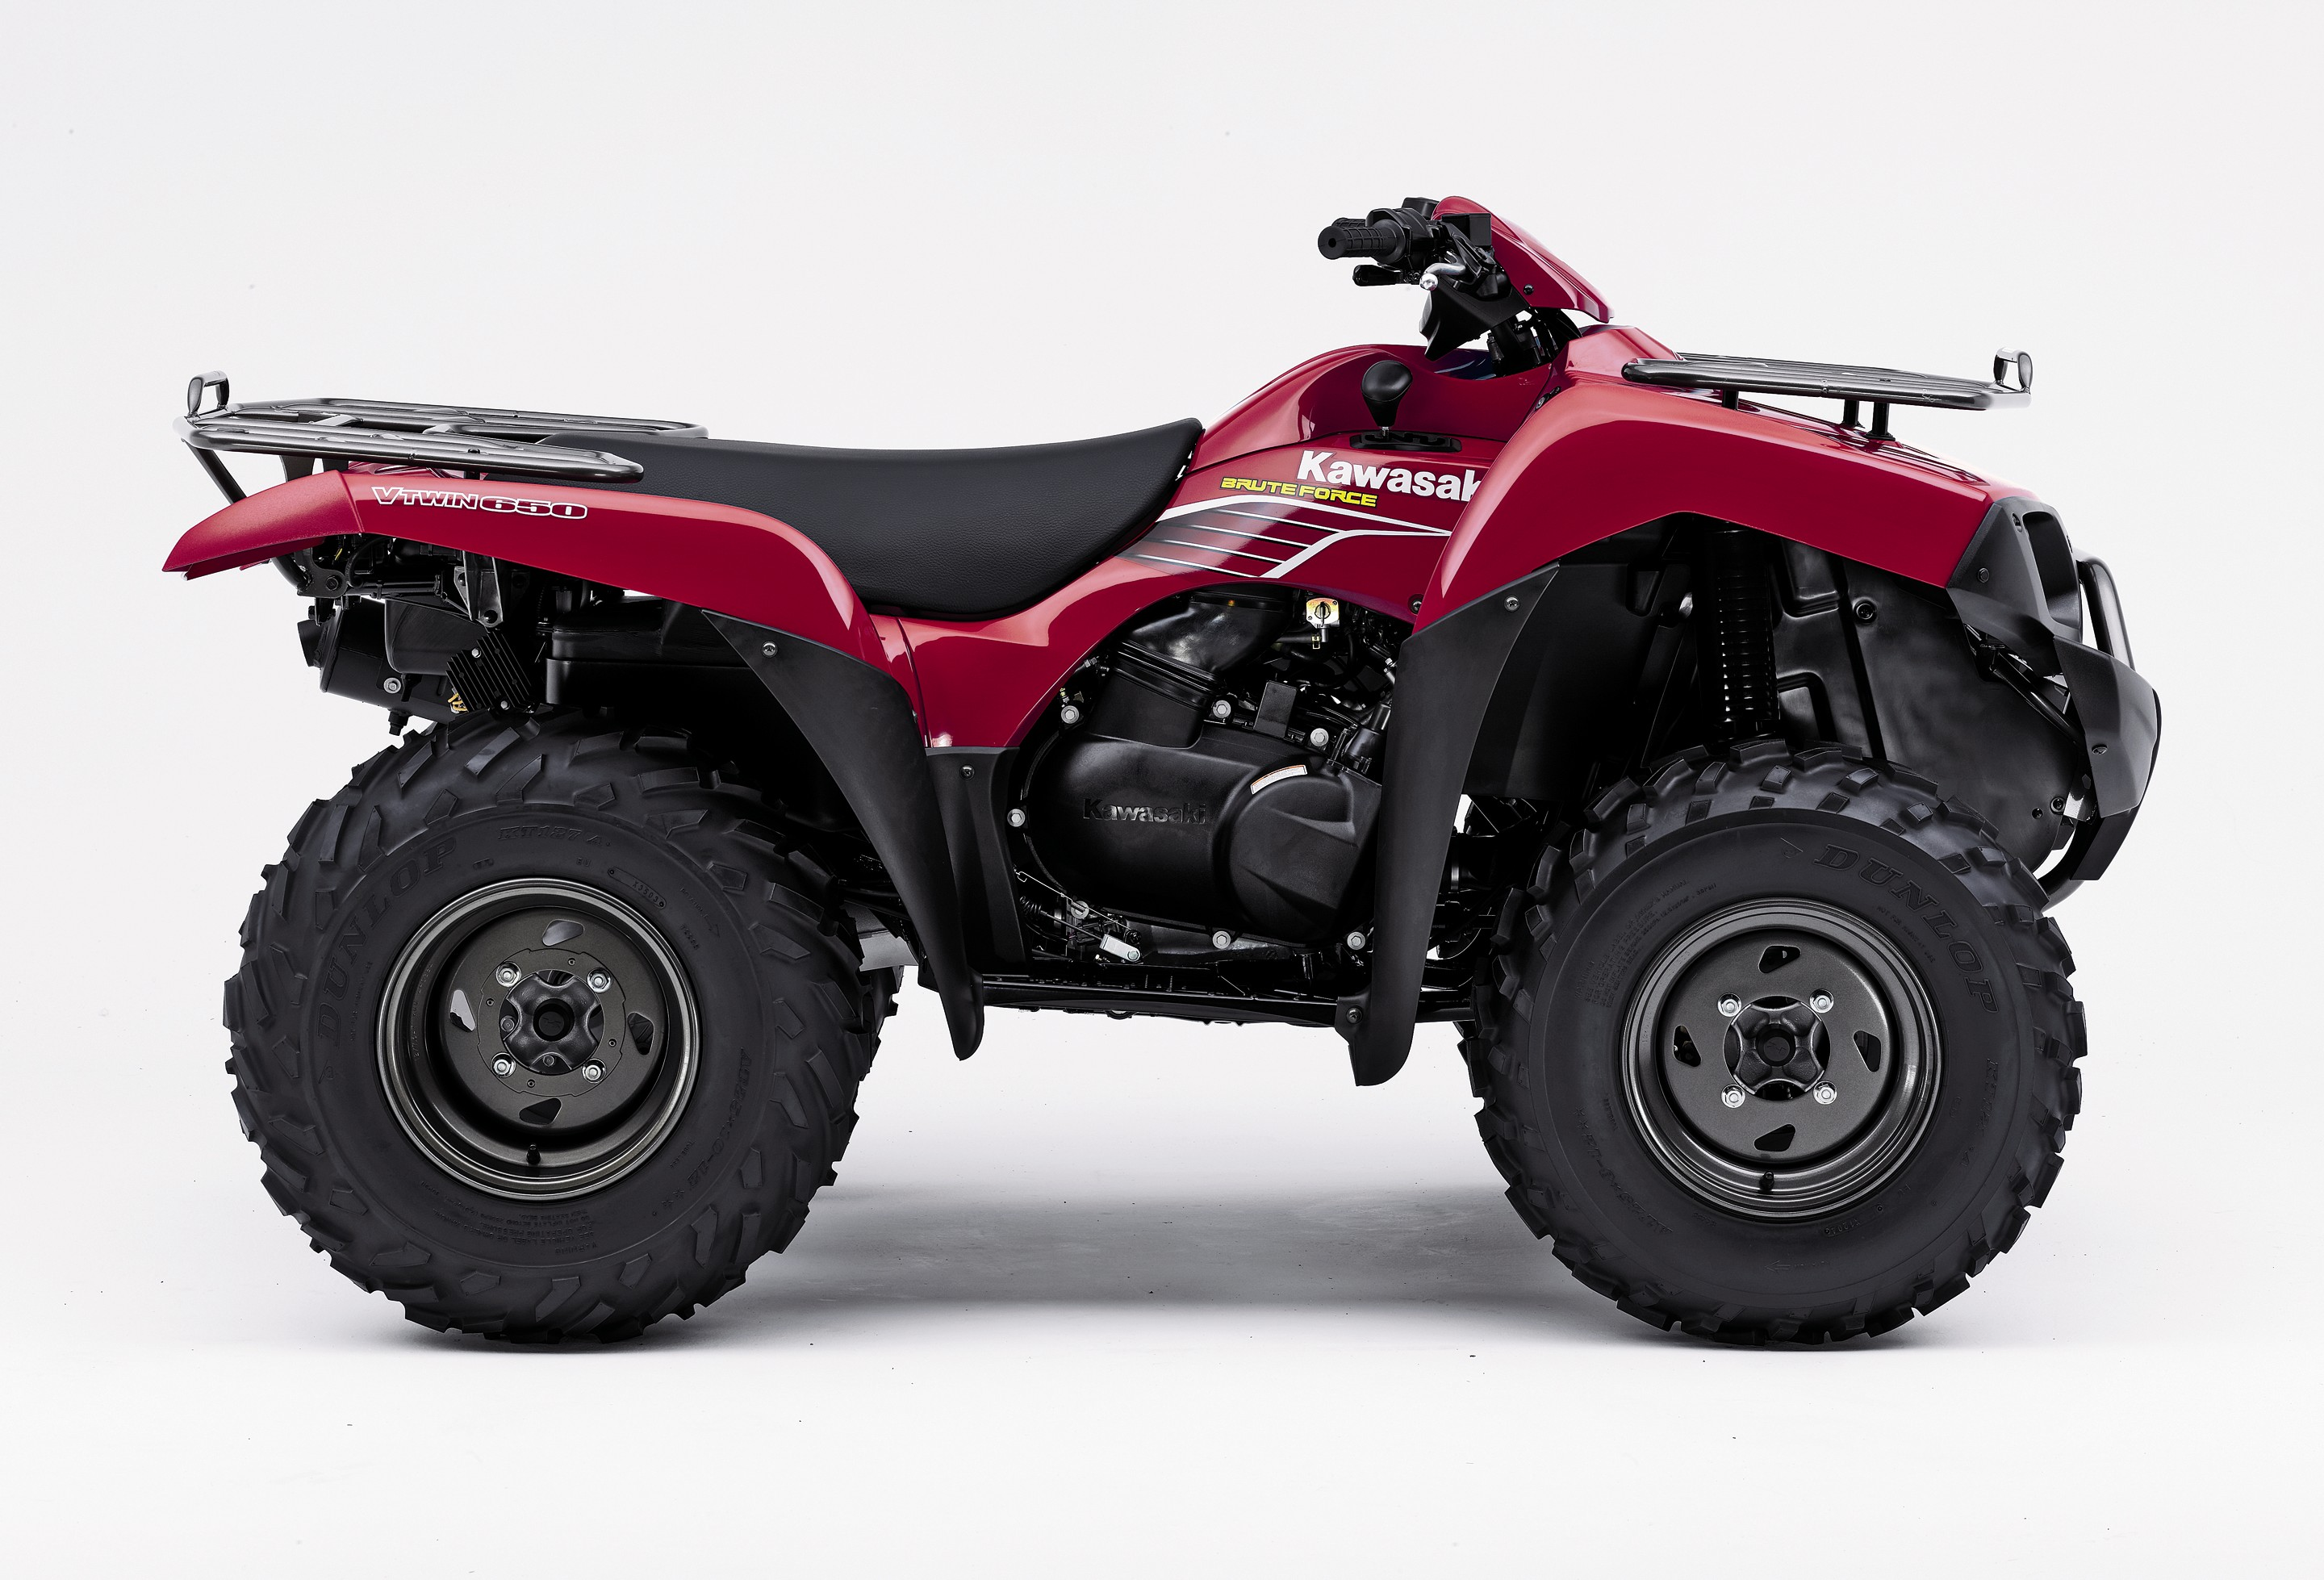 cpsc kawasaki motors corp u s a announce recall of atvs. Black Bedroom Furniture Sets. Home Design Ideas